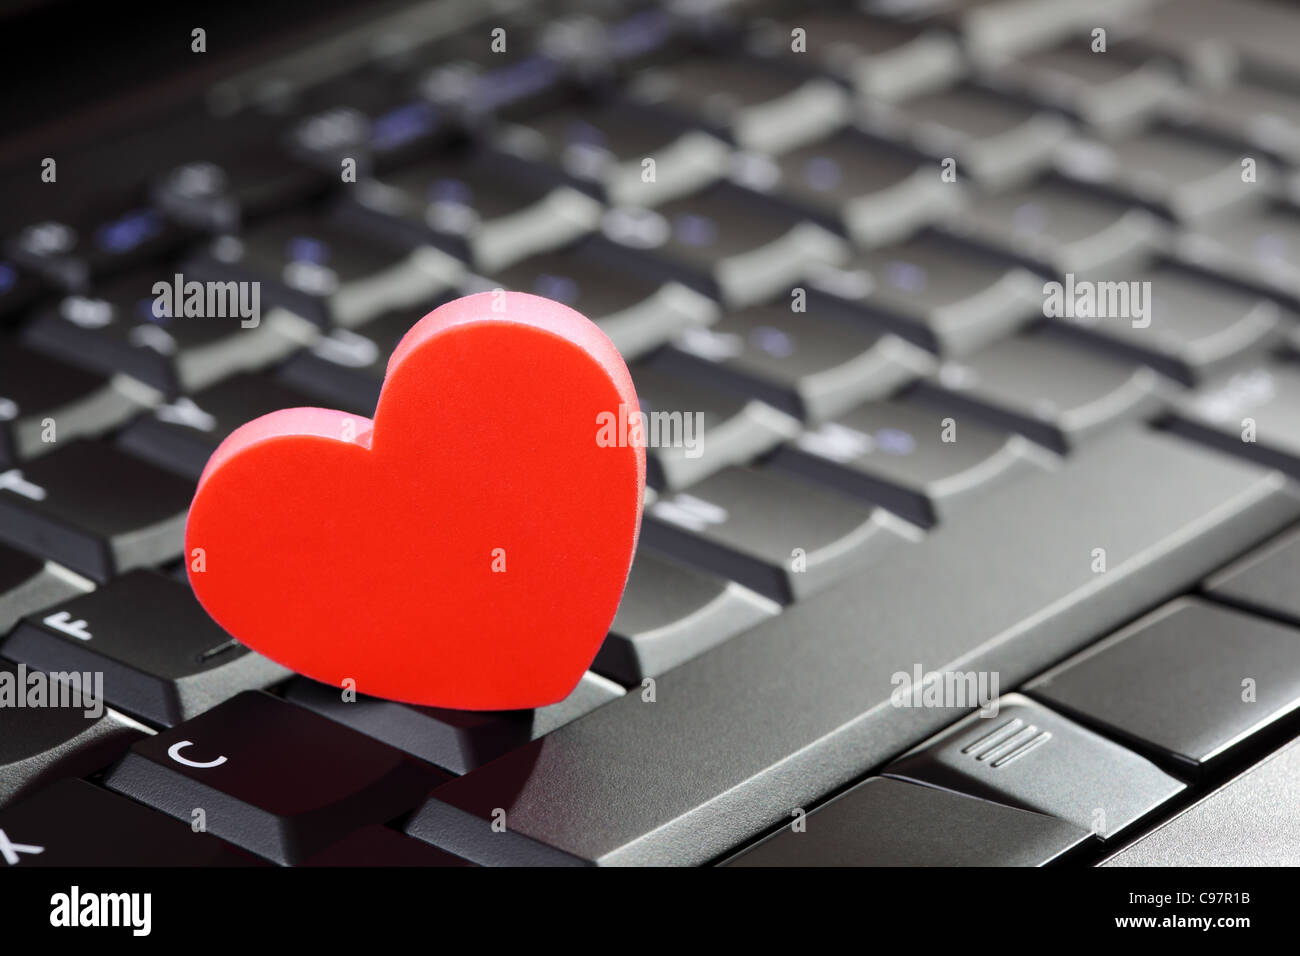 Keyboard With Heart Symbol Stock Photos Keyboard With Heart Symbol